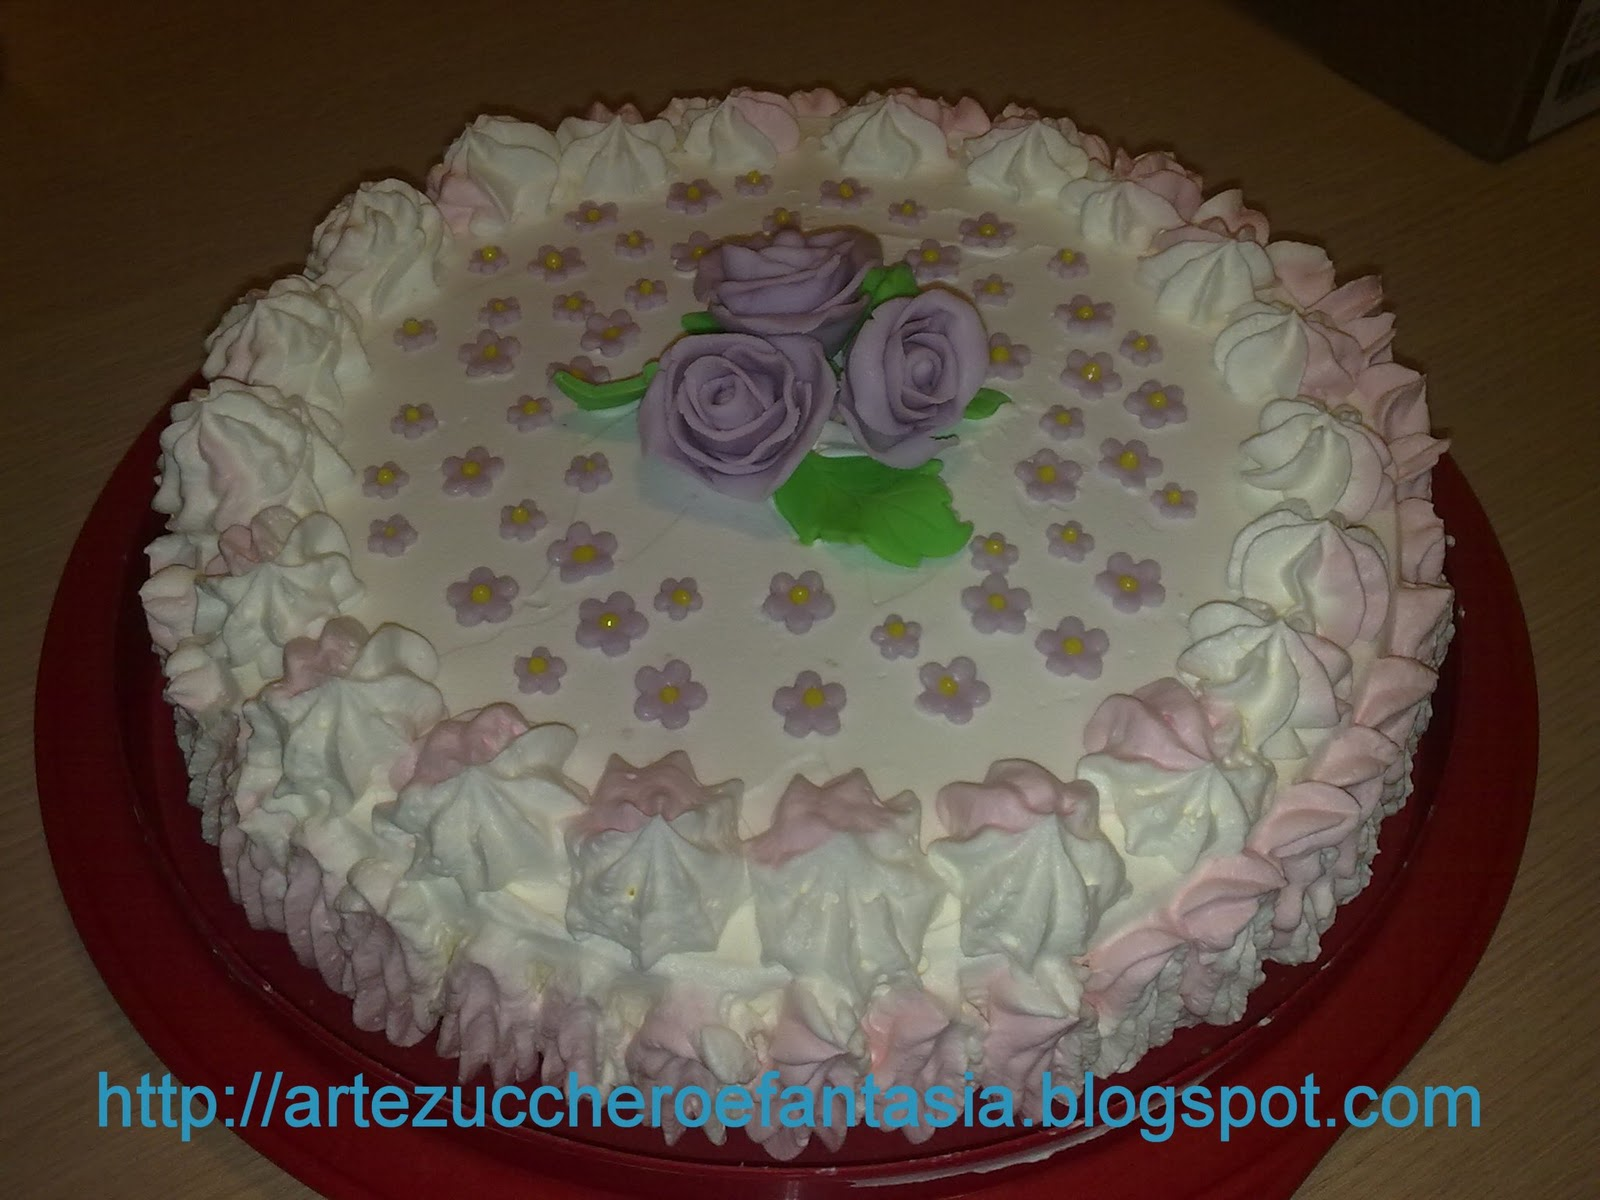 Torte decorate con panna colorata - Foto per decorare torte ...